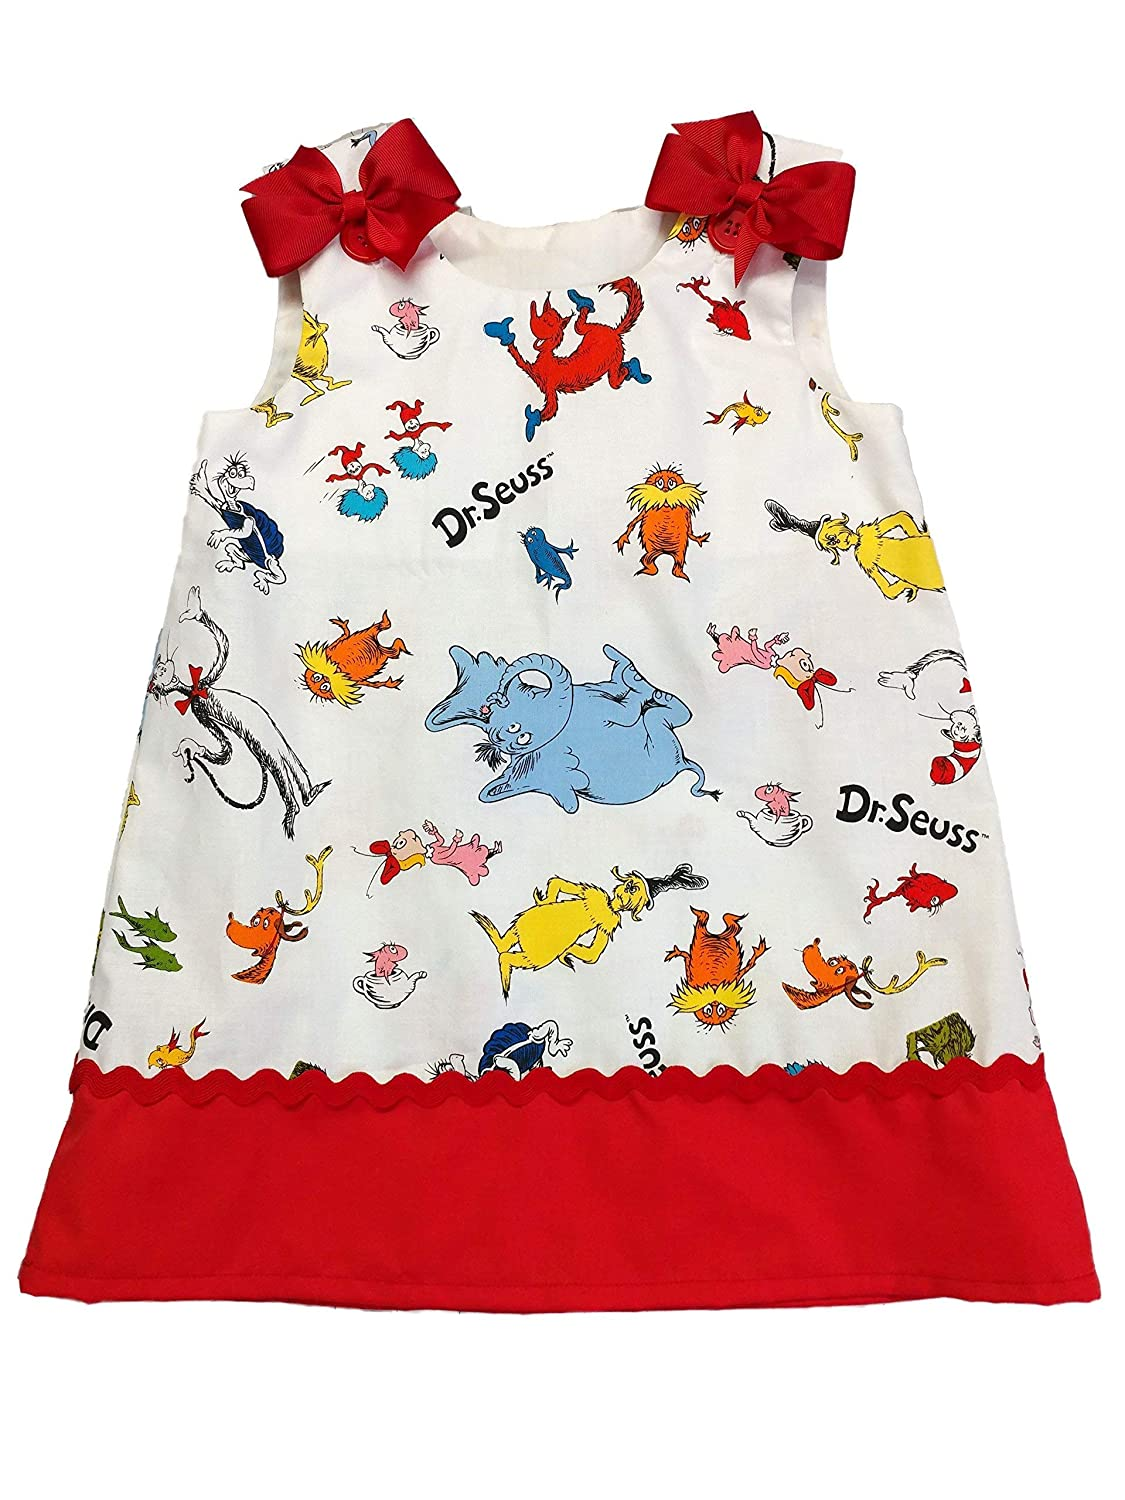 Girls dress Girl Dr Seuss dress Girl Cat in the hat dress Girl Sr Seuss birthday dress Girl dress